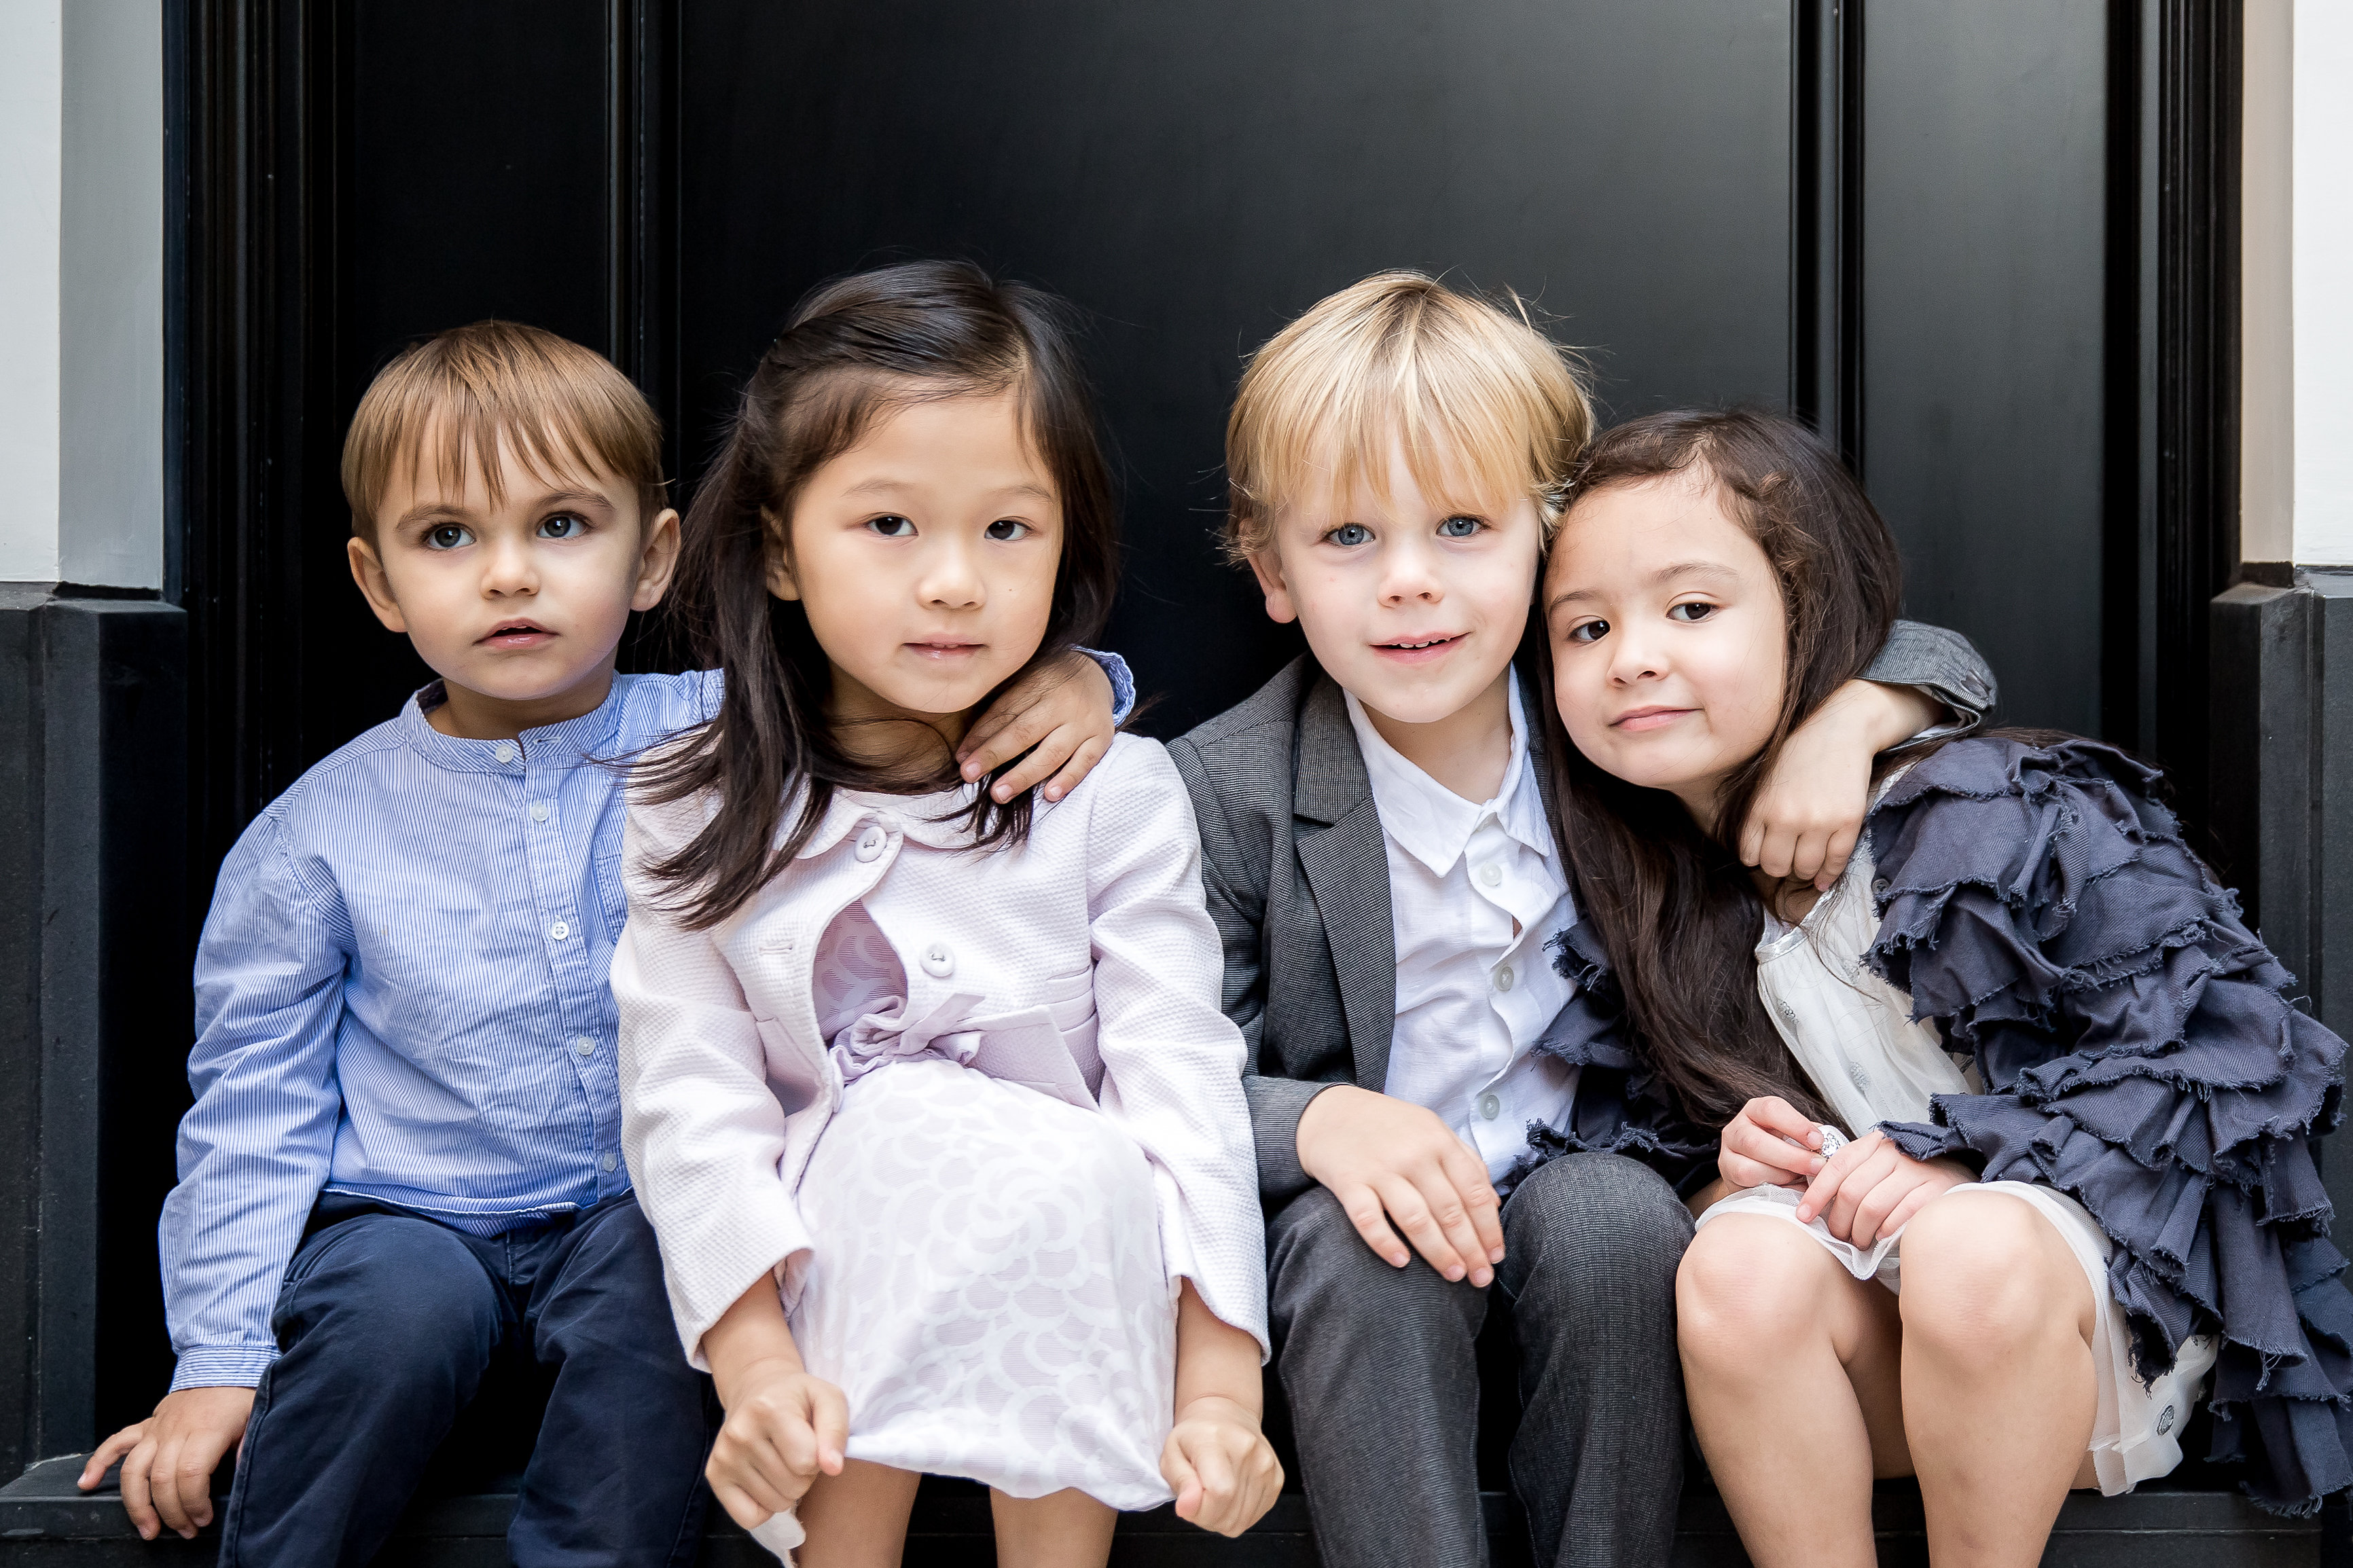 Designer Kids' Clothes … Without The Price Tag and Without The Landfill? Sign Us Up To Retykle.